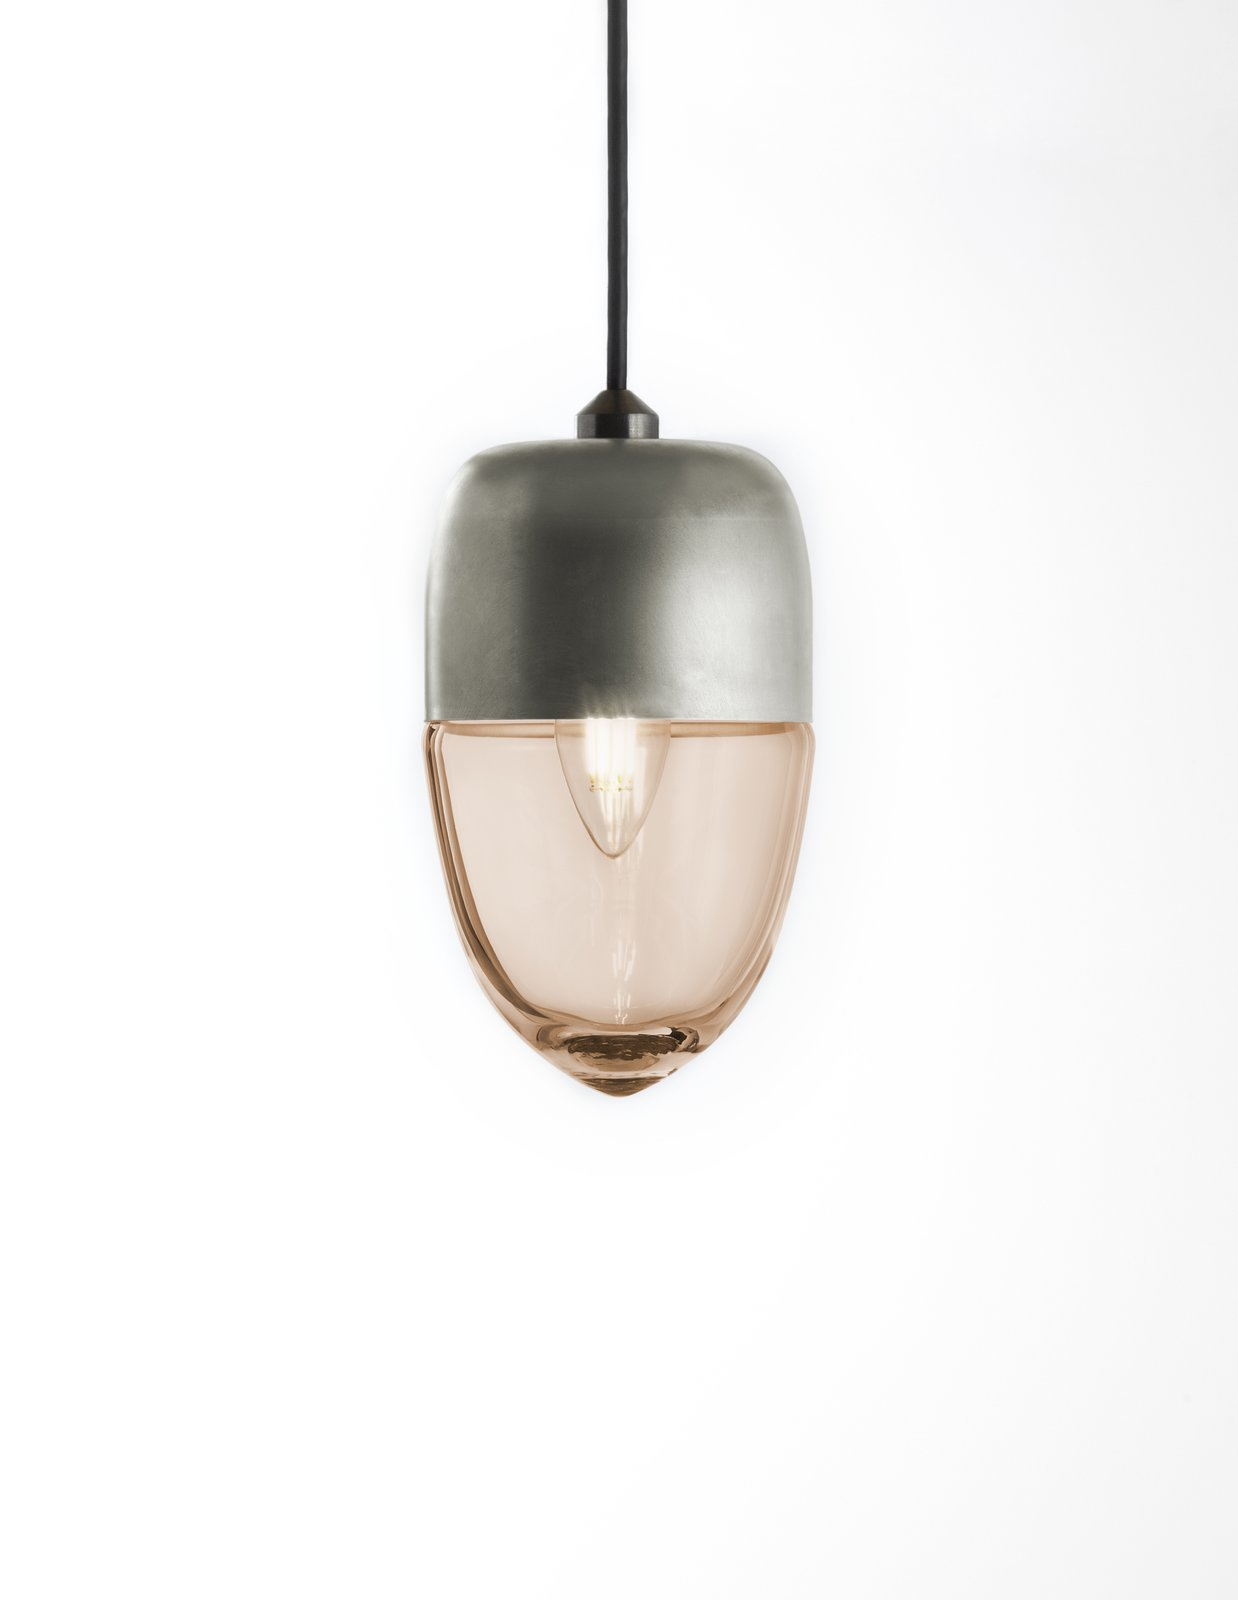 The Vela light has a thin, delicate shape and was designed as small floating vessel for lighting modern spaces. It can be used in multi-pendant installations.